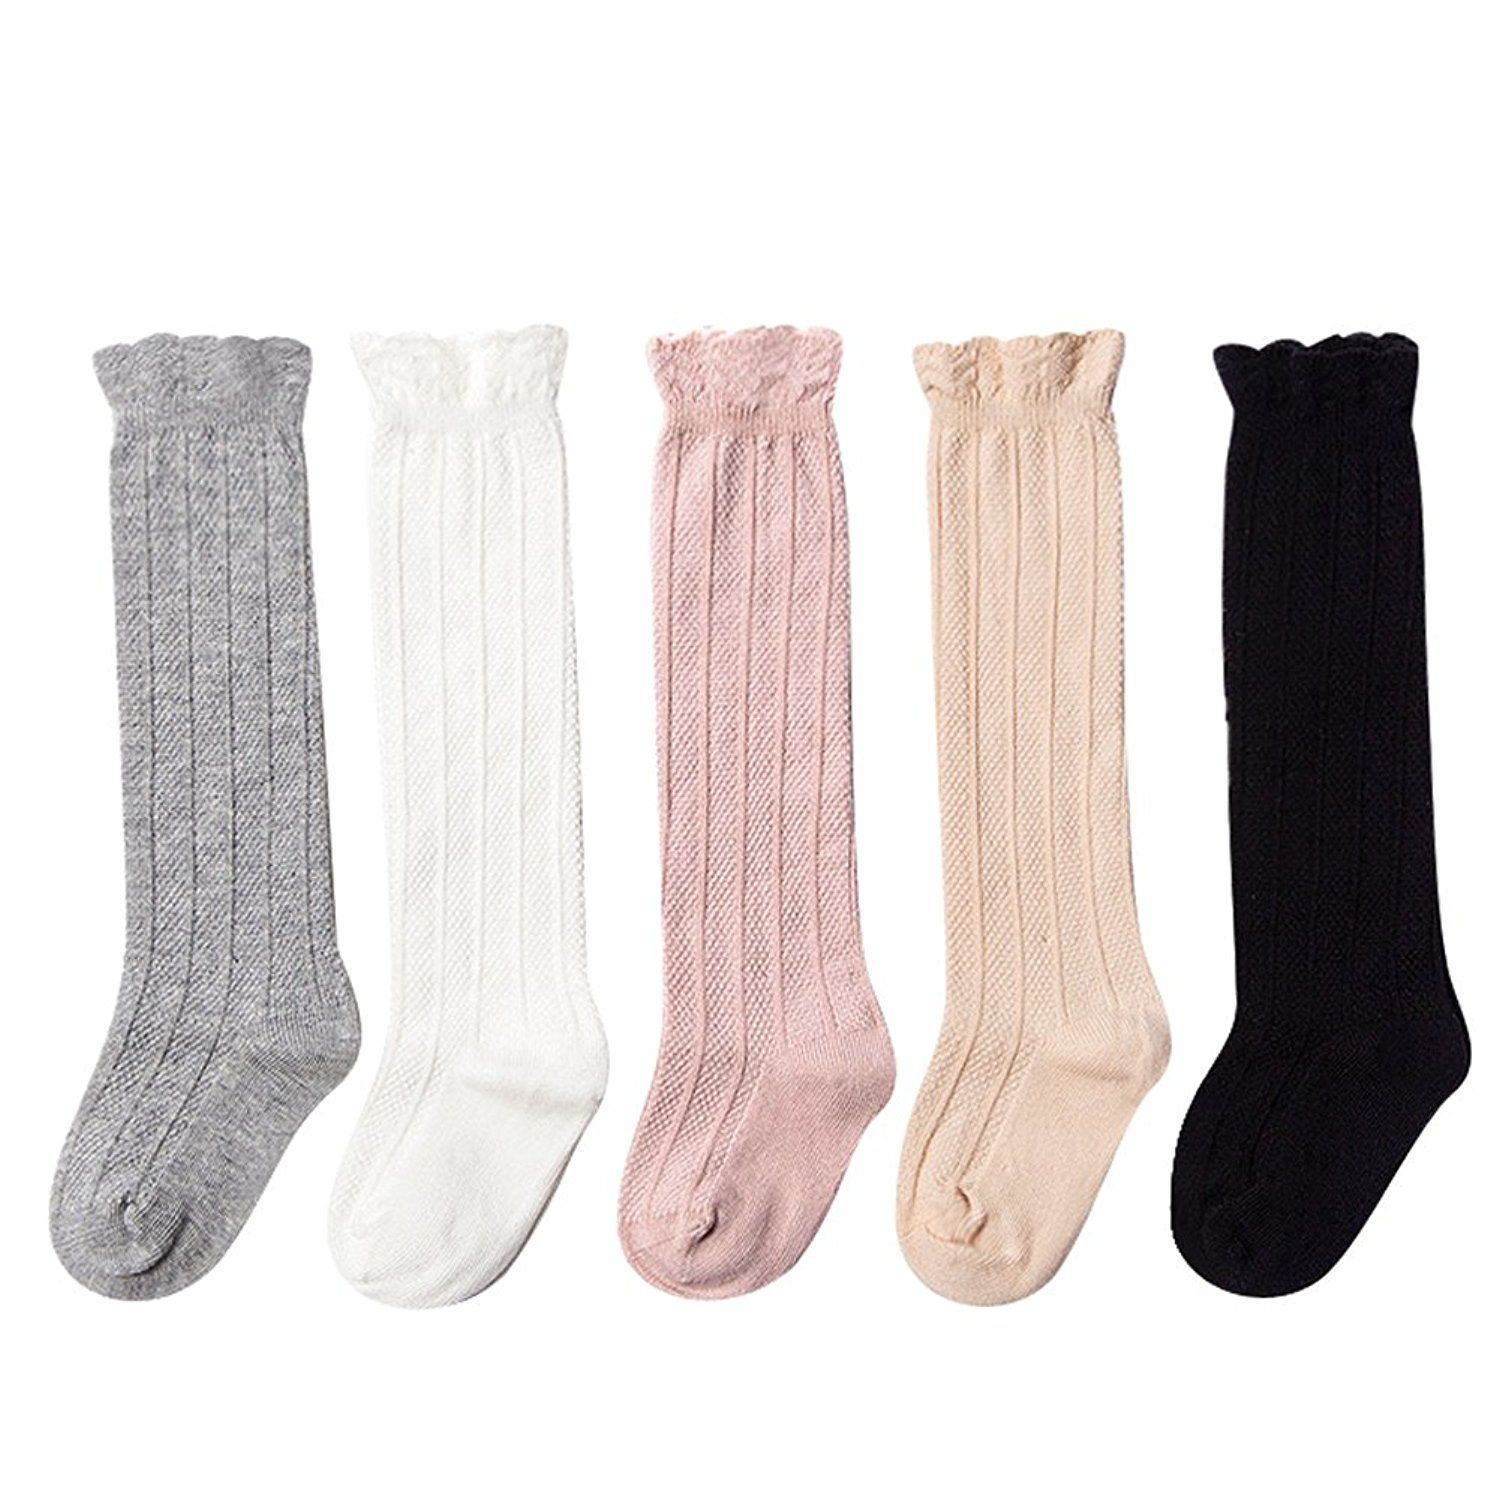 85a3c529789 Amazon.com  Epeius Baby Girls Boys Uniform Knee High Socks Tube Ruffled  Stockings Infants and Toddlers (Pack of 3 5)  Clothing